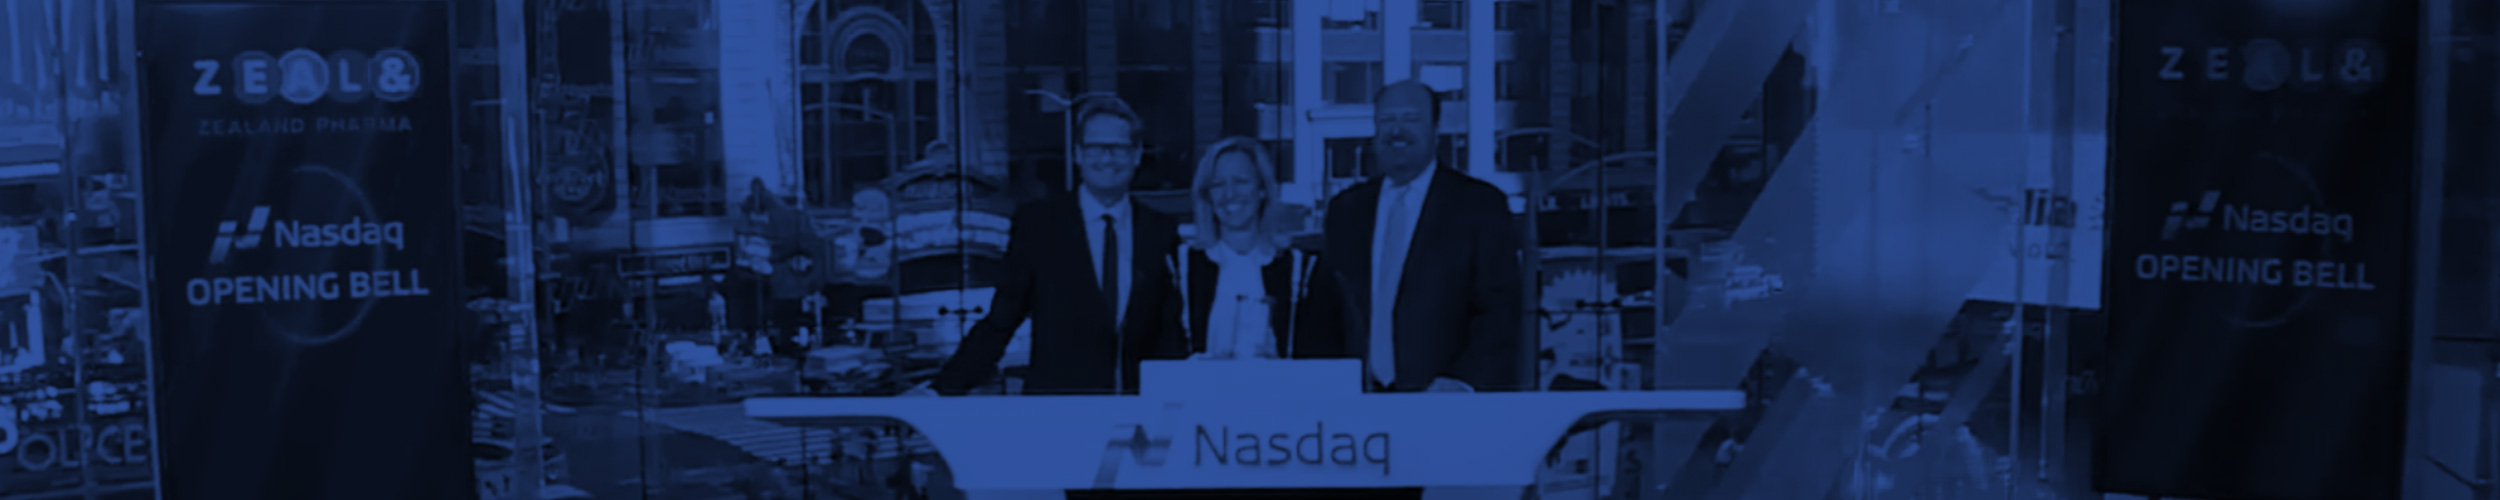 10.08.2017 President and CEO Britt Meelby Jensen rang the Opening Bell at NASDAQ, New York.    Watch the ceremony  here .